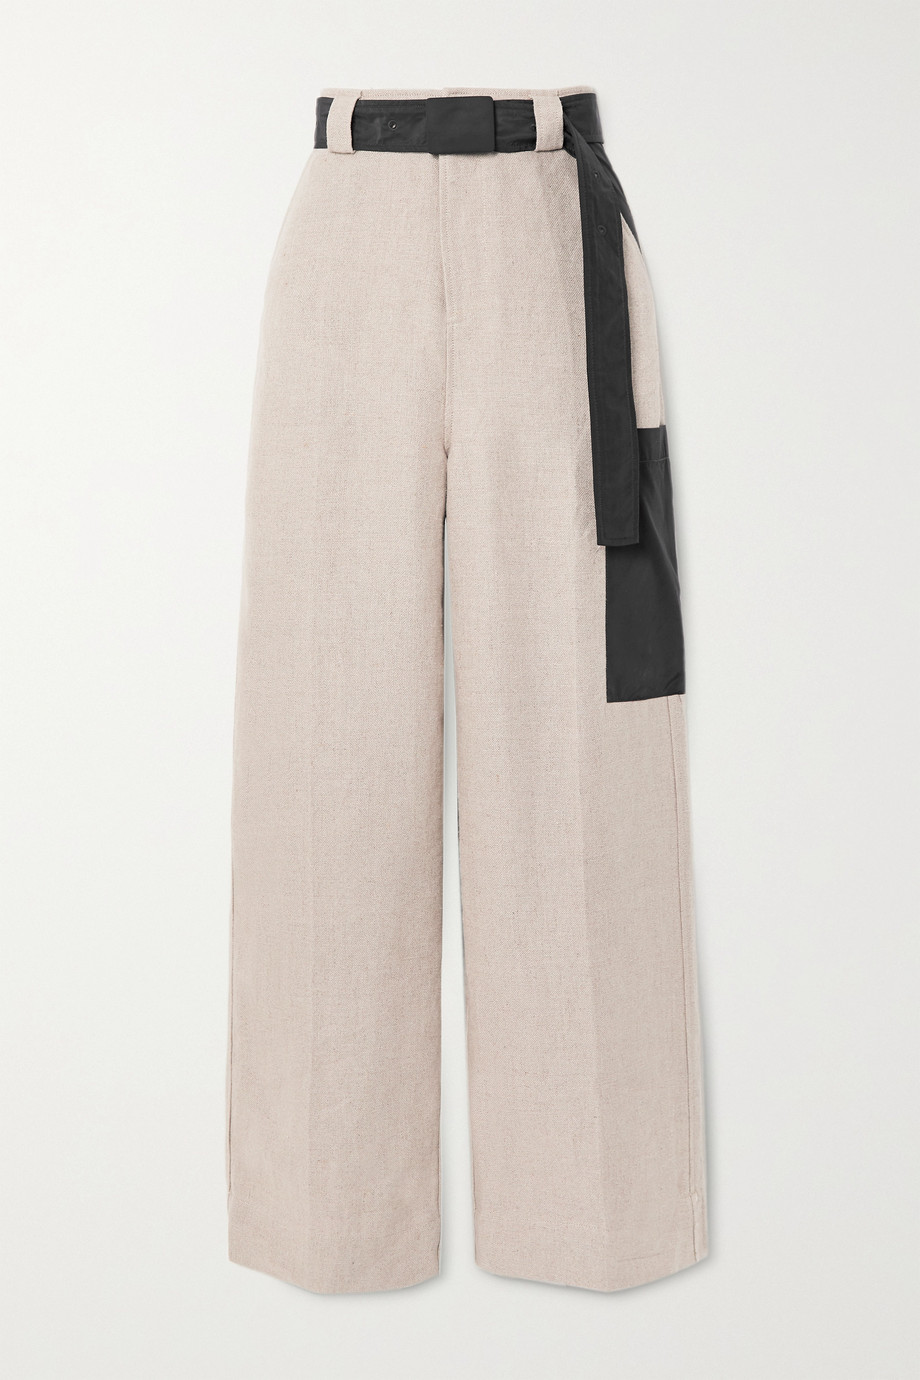 GANNI Shell-trimmed linen wide-leg pants